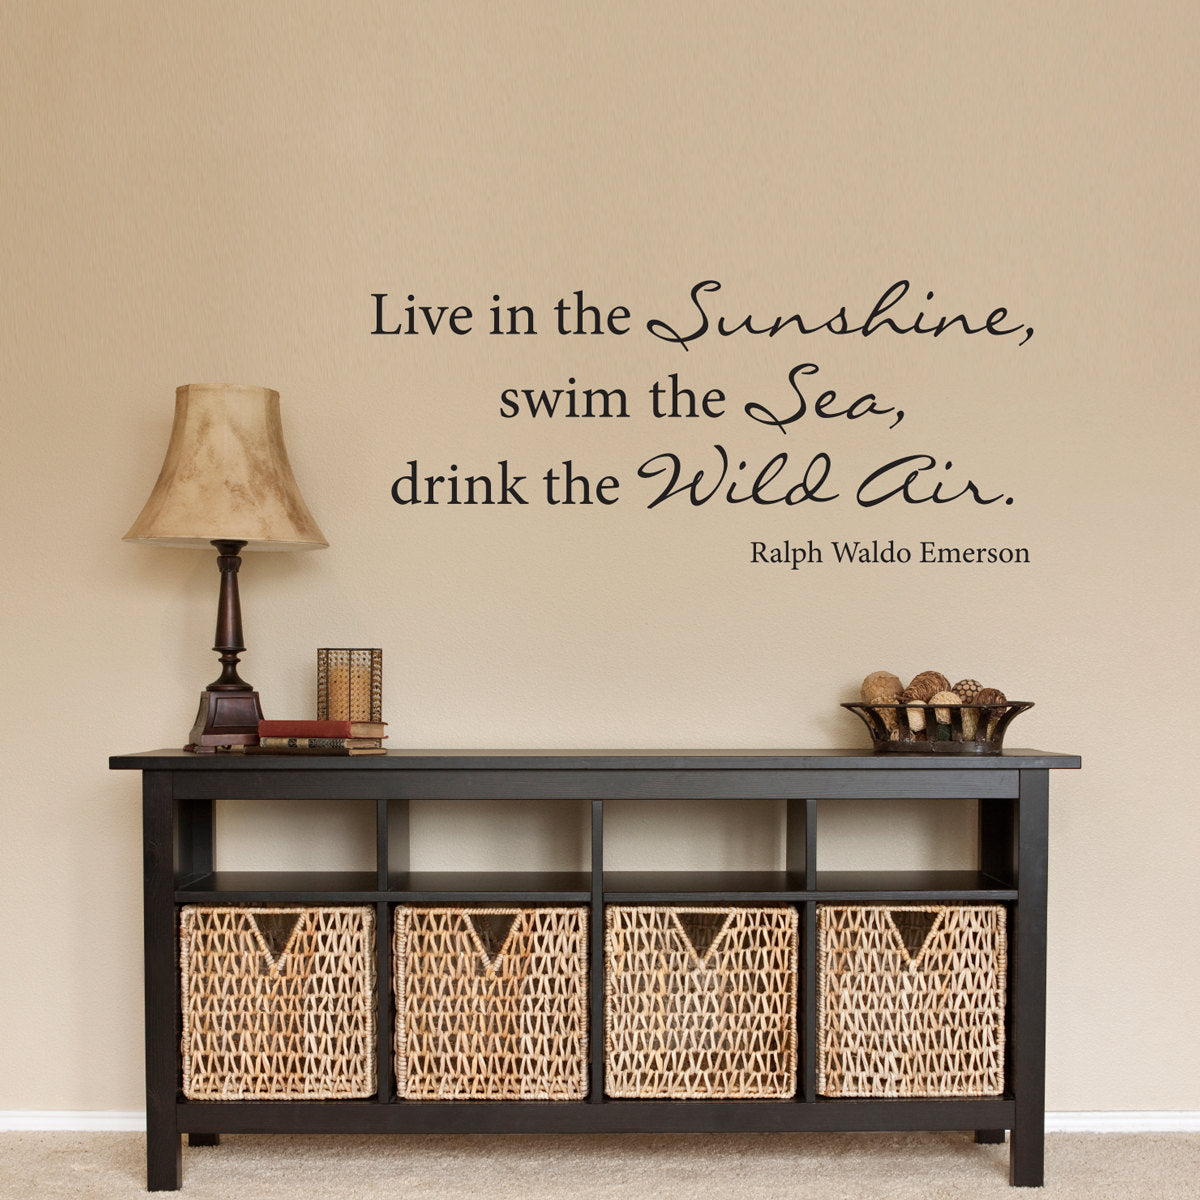 Emerson Quote Wall Decal Drink The Wild Air Ralph Waldo Emerson